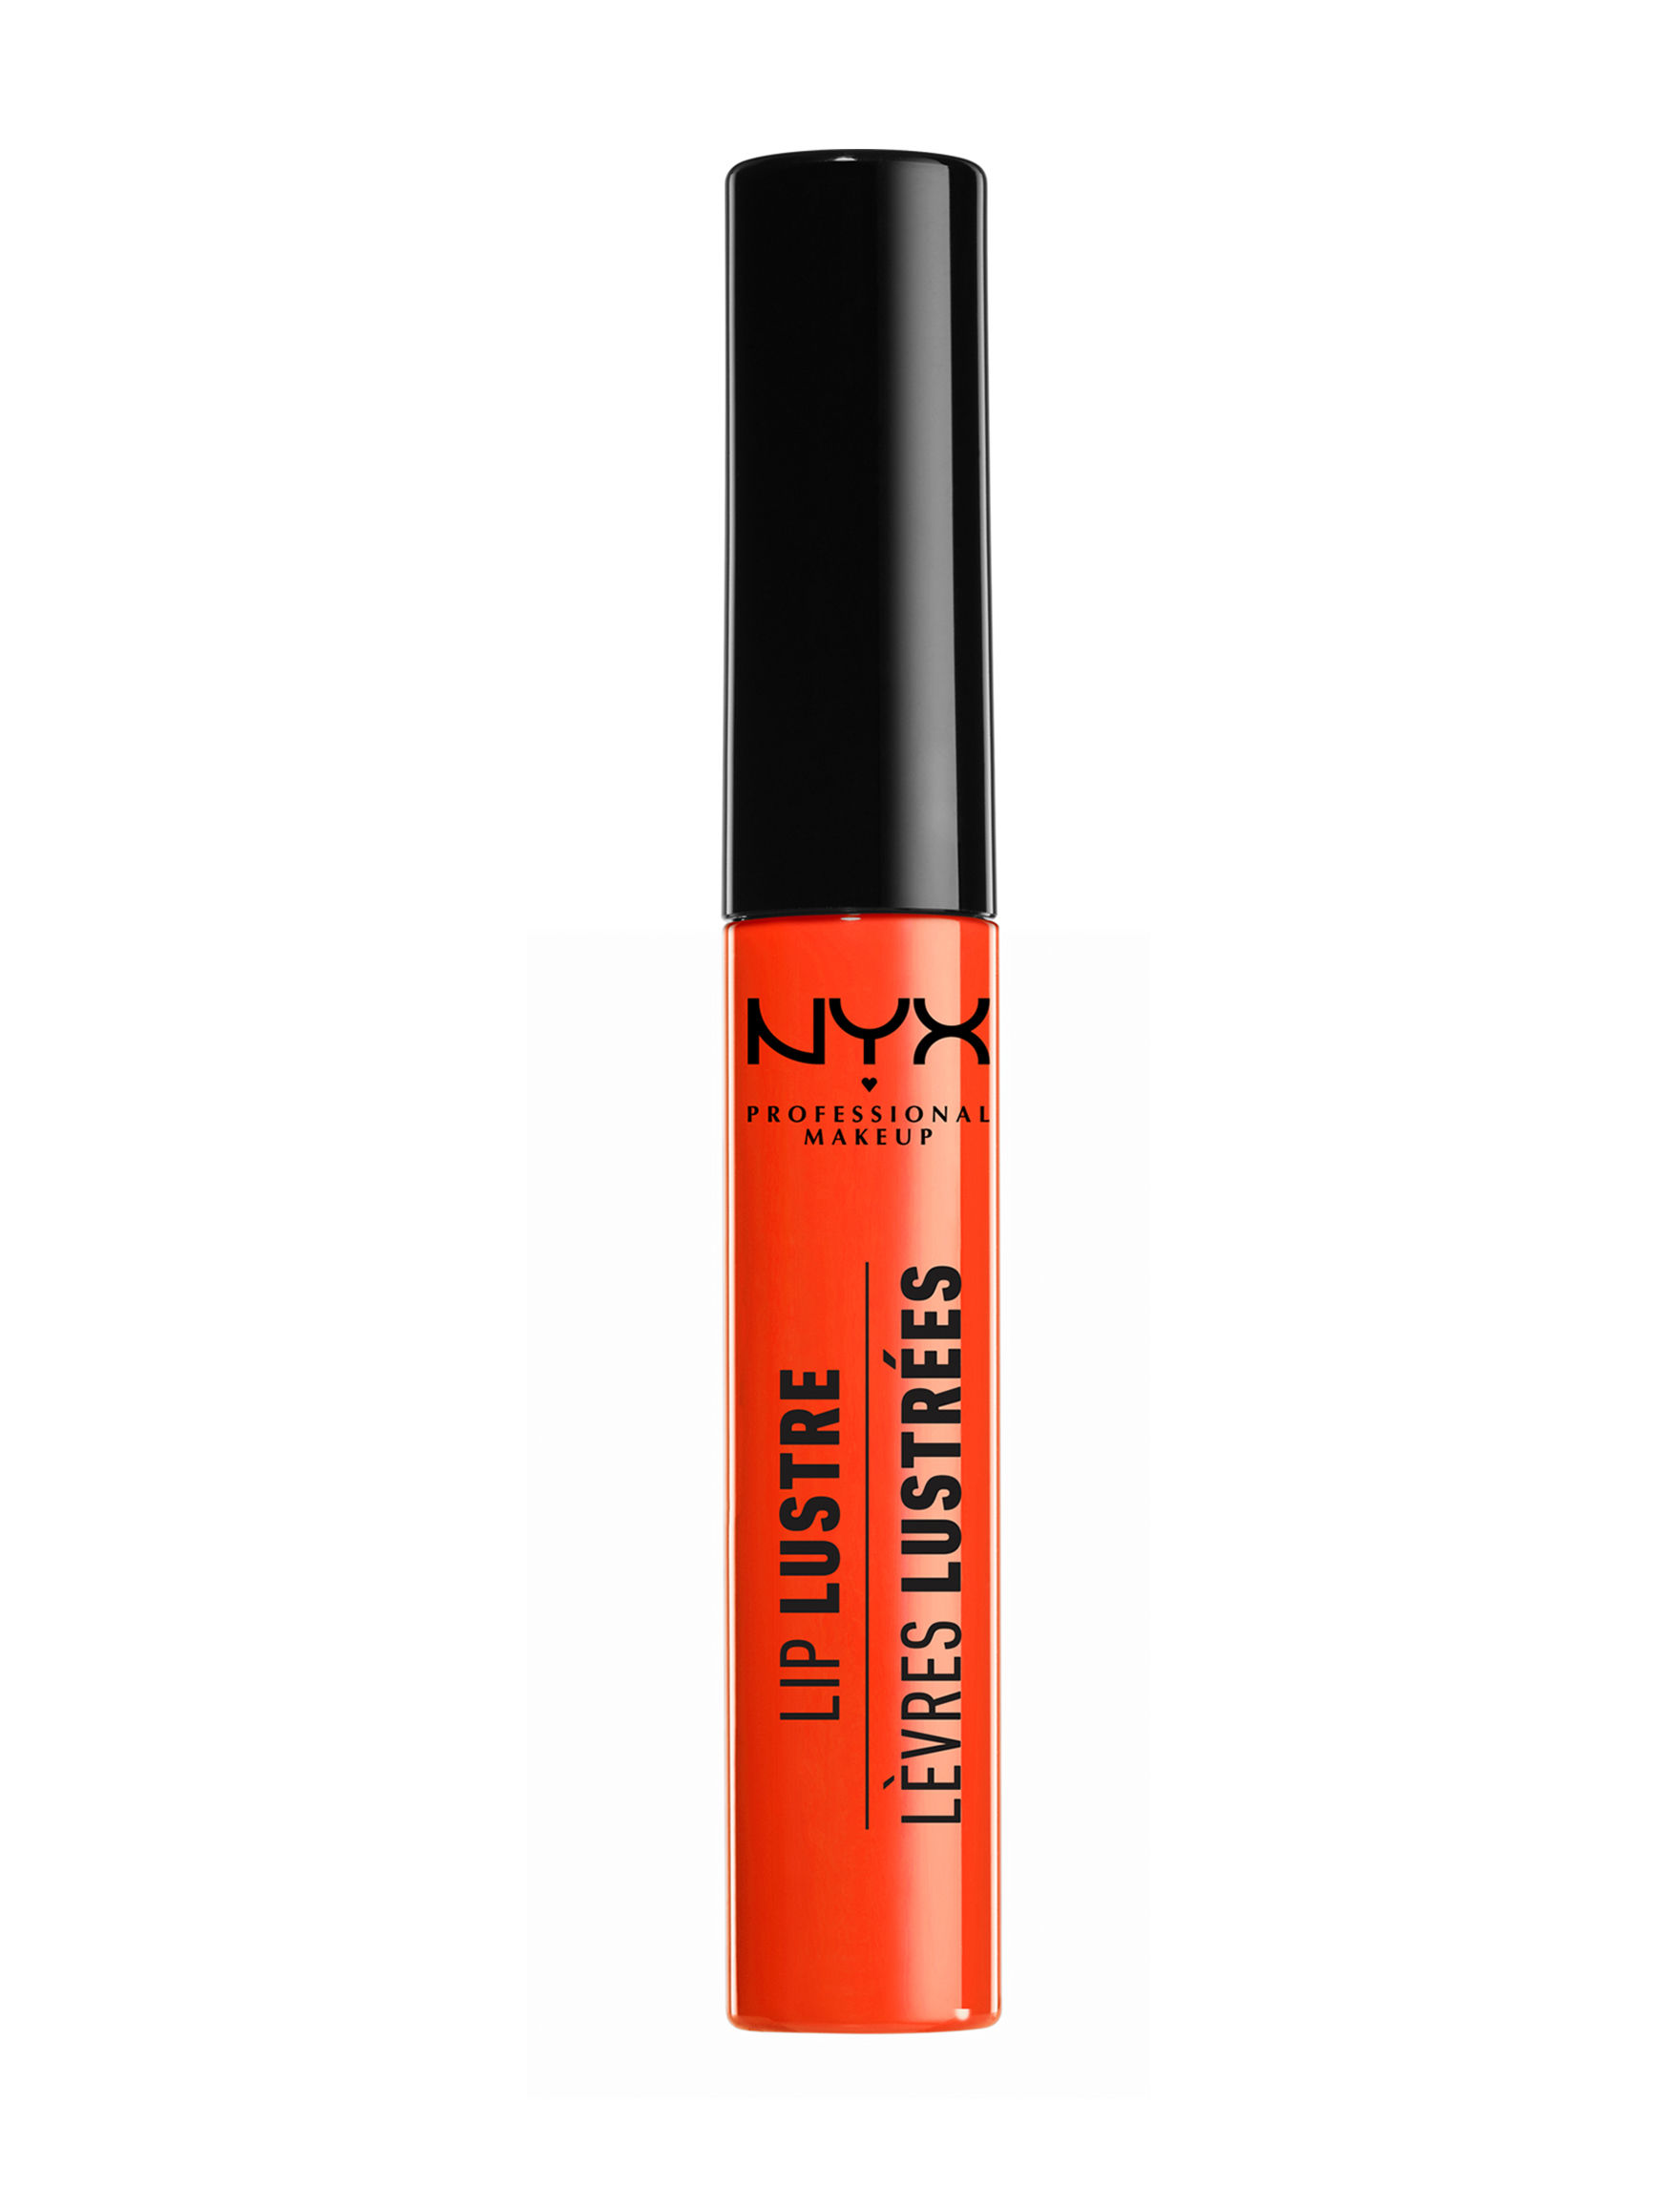 NYX Professional Makeup Juicy Peach Lips Lip Gloss